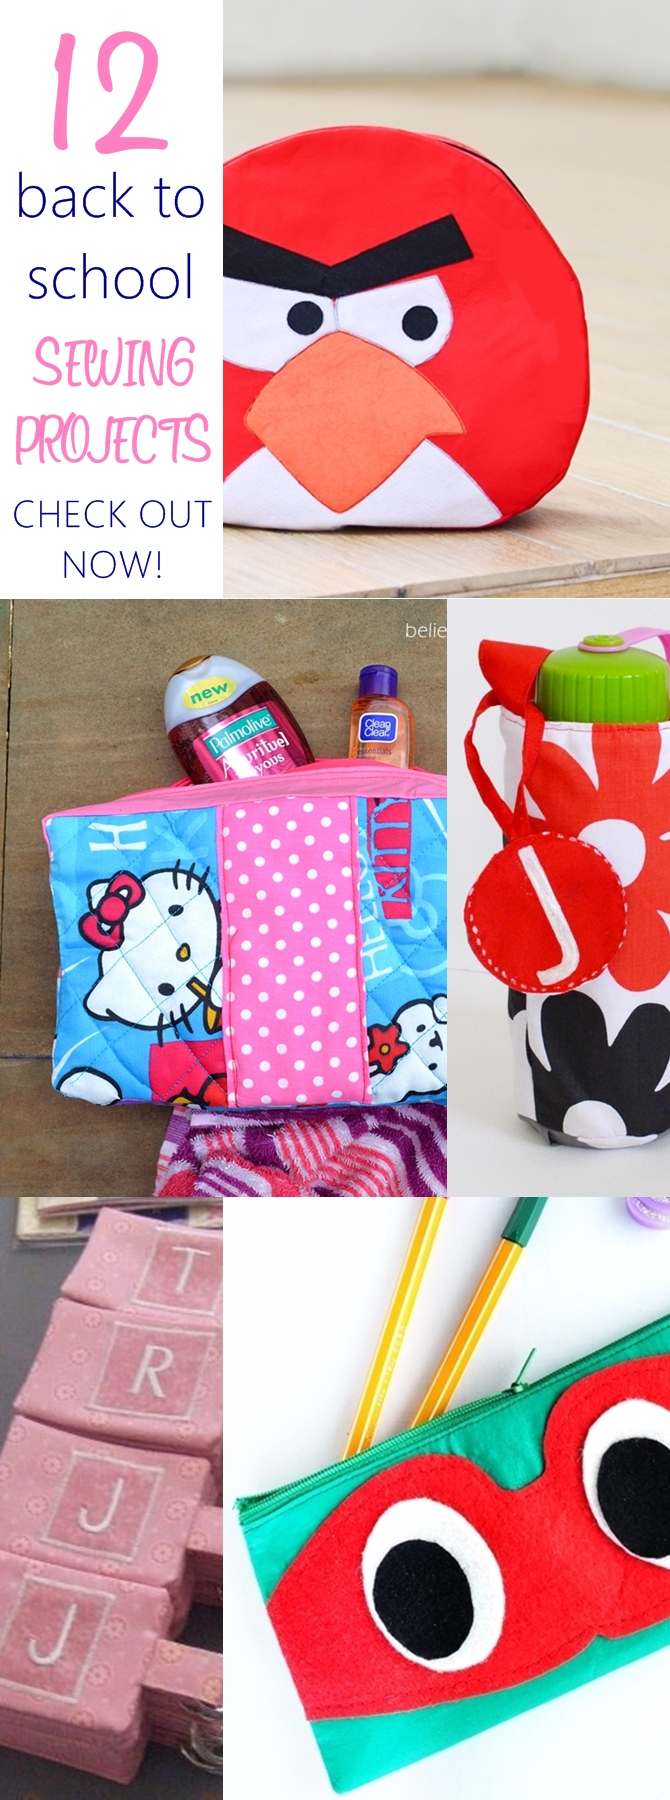 12 Back to School Sewing Ideas with Free Patterns on sewsomestuff.com School season is starting and it can get pretty pricey buying all the supplies. Here are some simple sewing projects that you can make for school and cut down the cost. Check them out now.